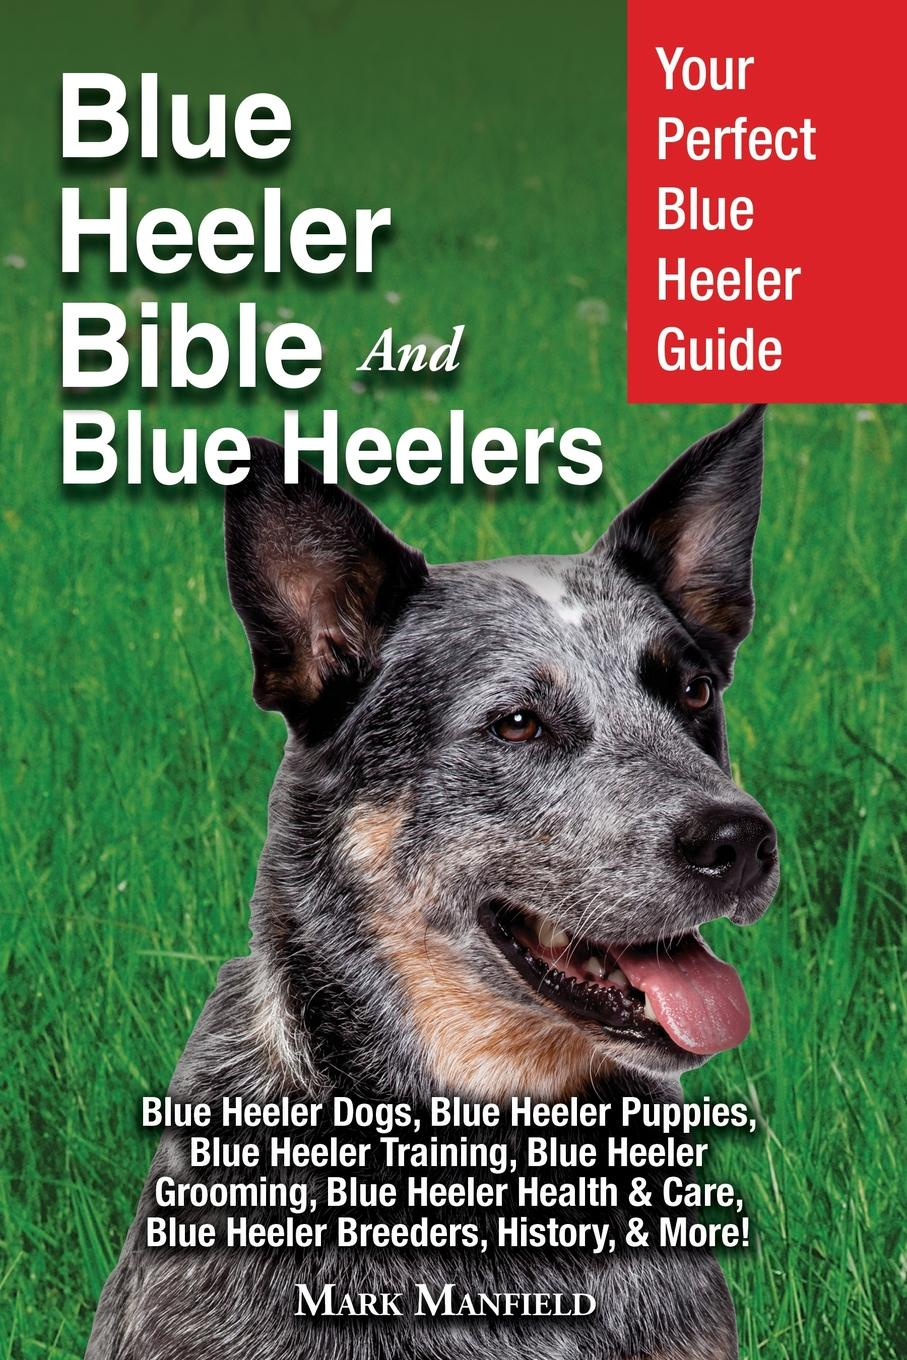 Mark Manfield Blue Heeler Bible And Heelers. Your Perfect Guide Dogs, Puppies, Training, Grooming, Health . Care, Breeders, History, More.